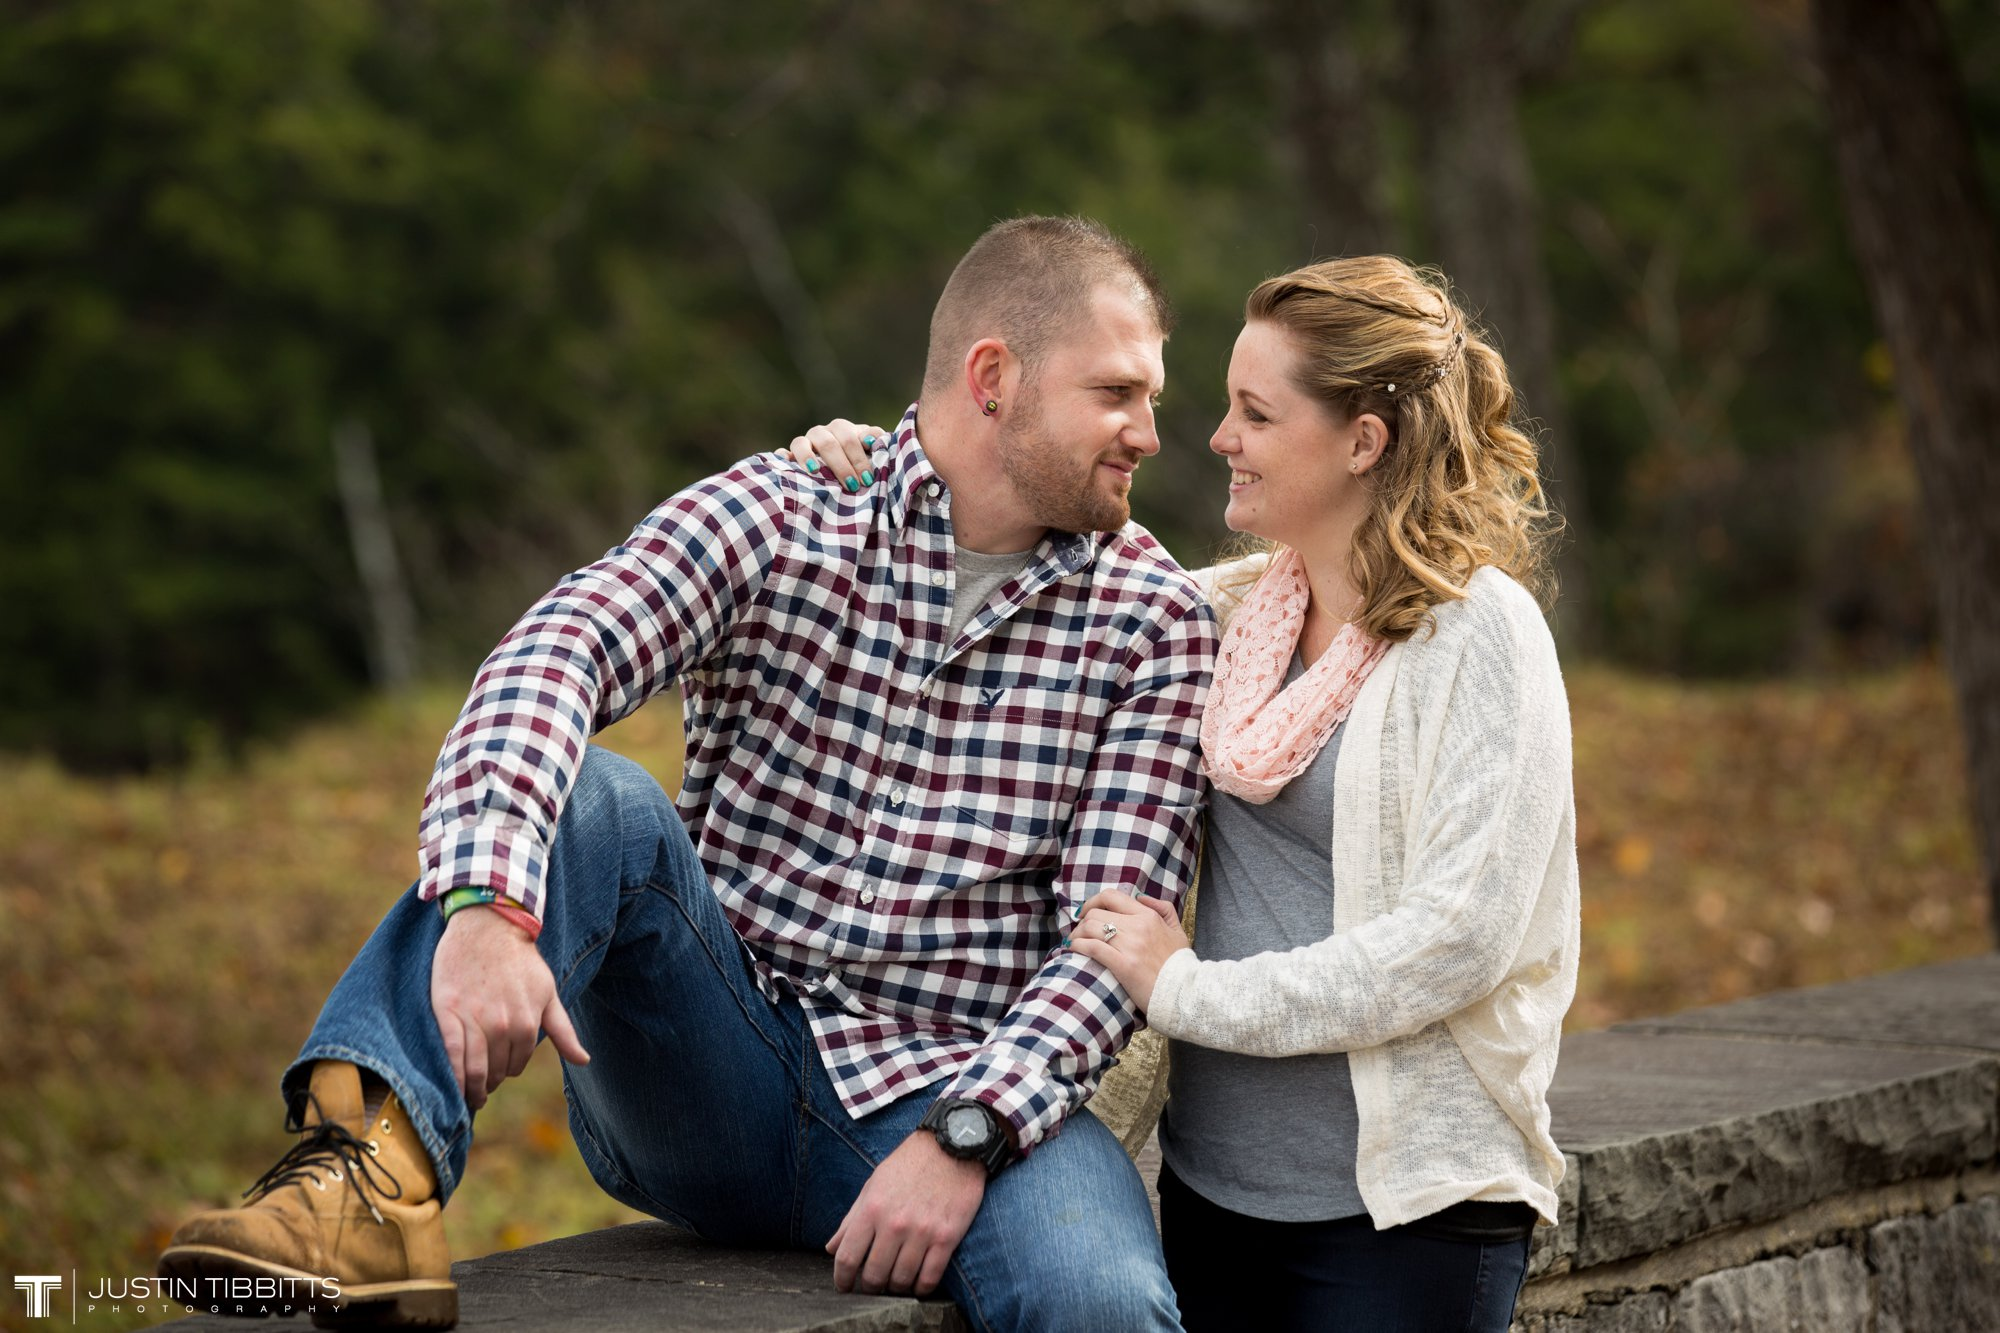 Justin Tibbitts Photography Ashlee and Steves Thatcher Park, New York Engagement Shoot-6